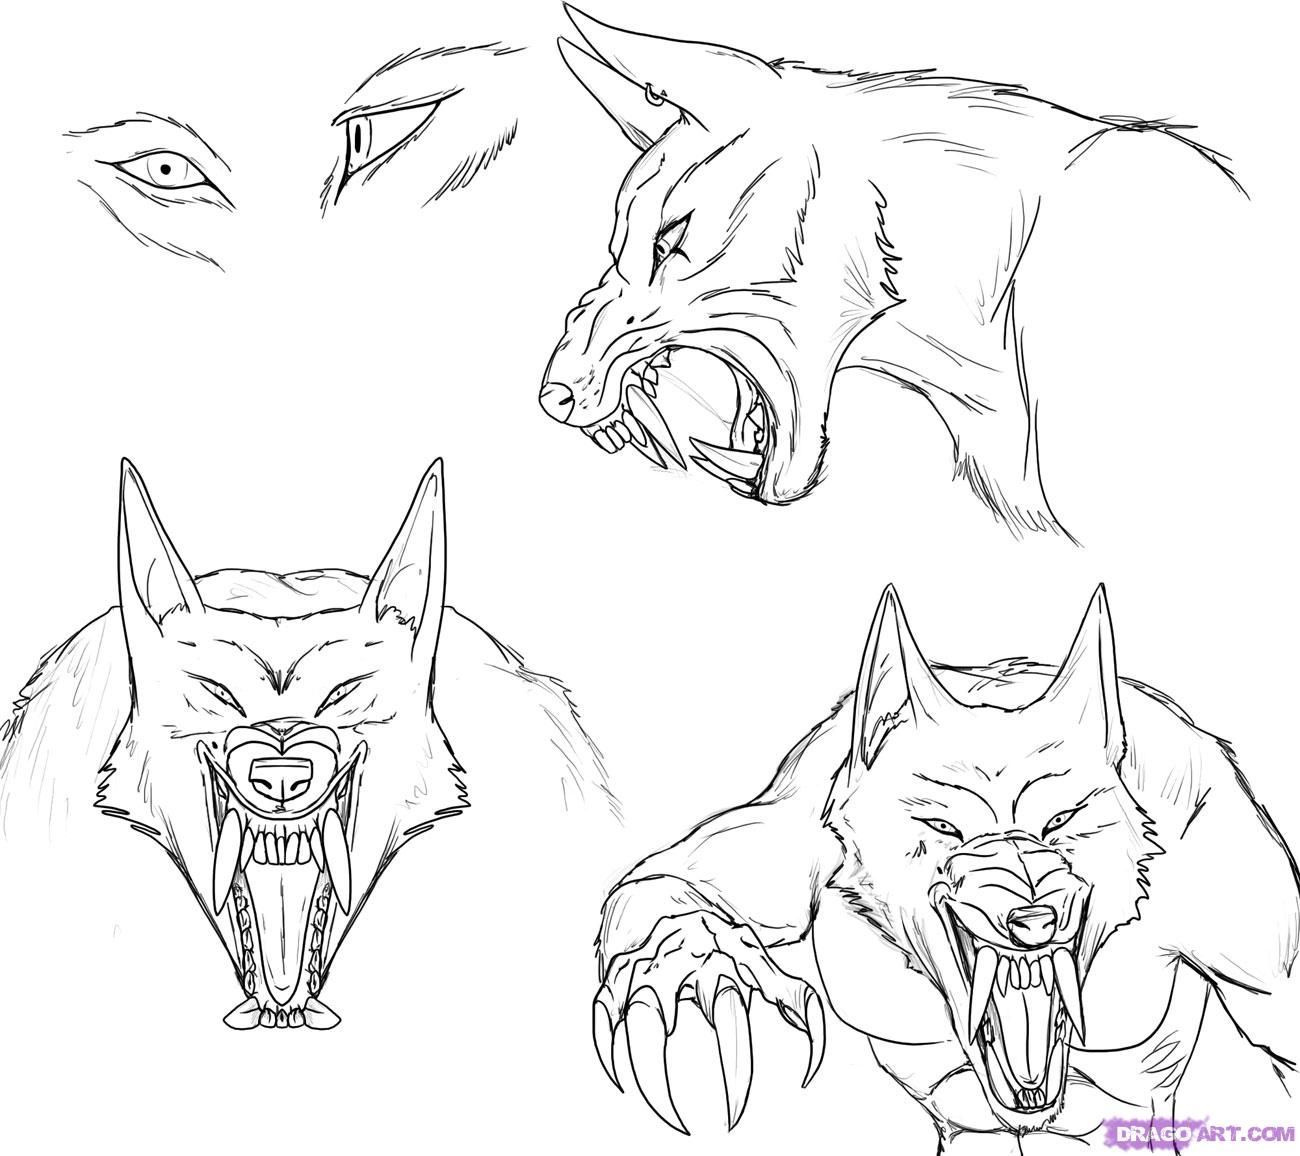 How To Draw A Werewolf Face, Head, Eyes Step 6